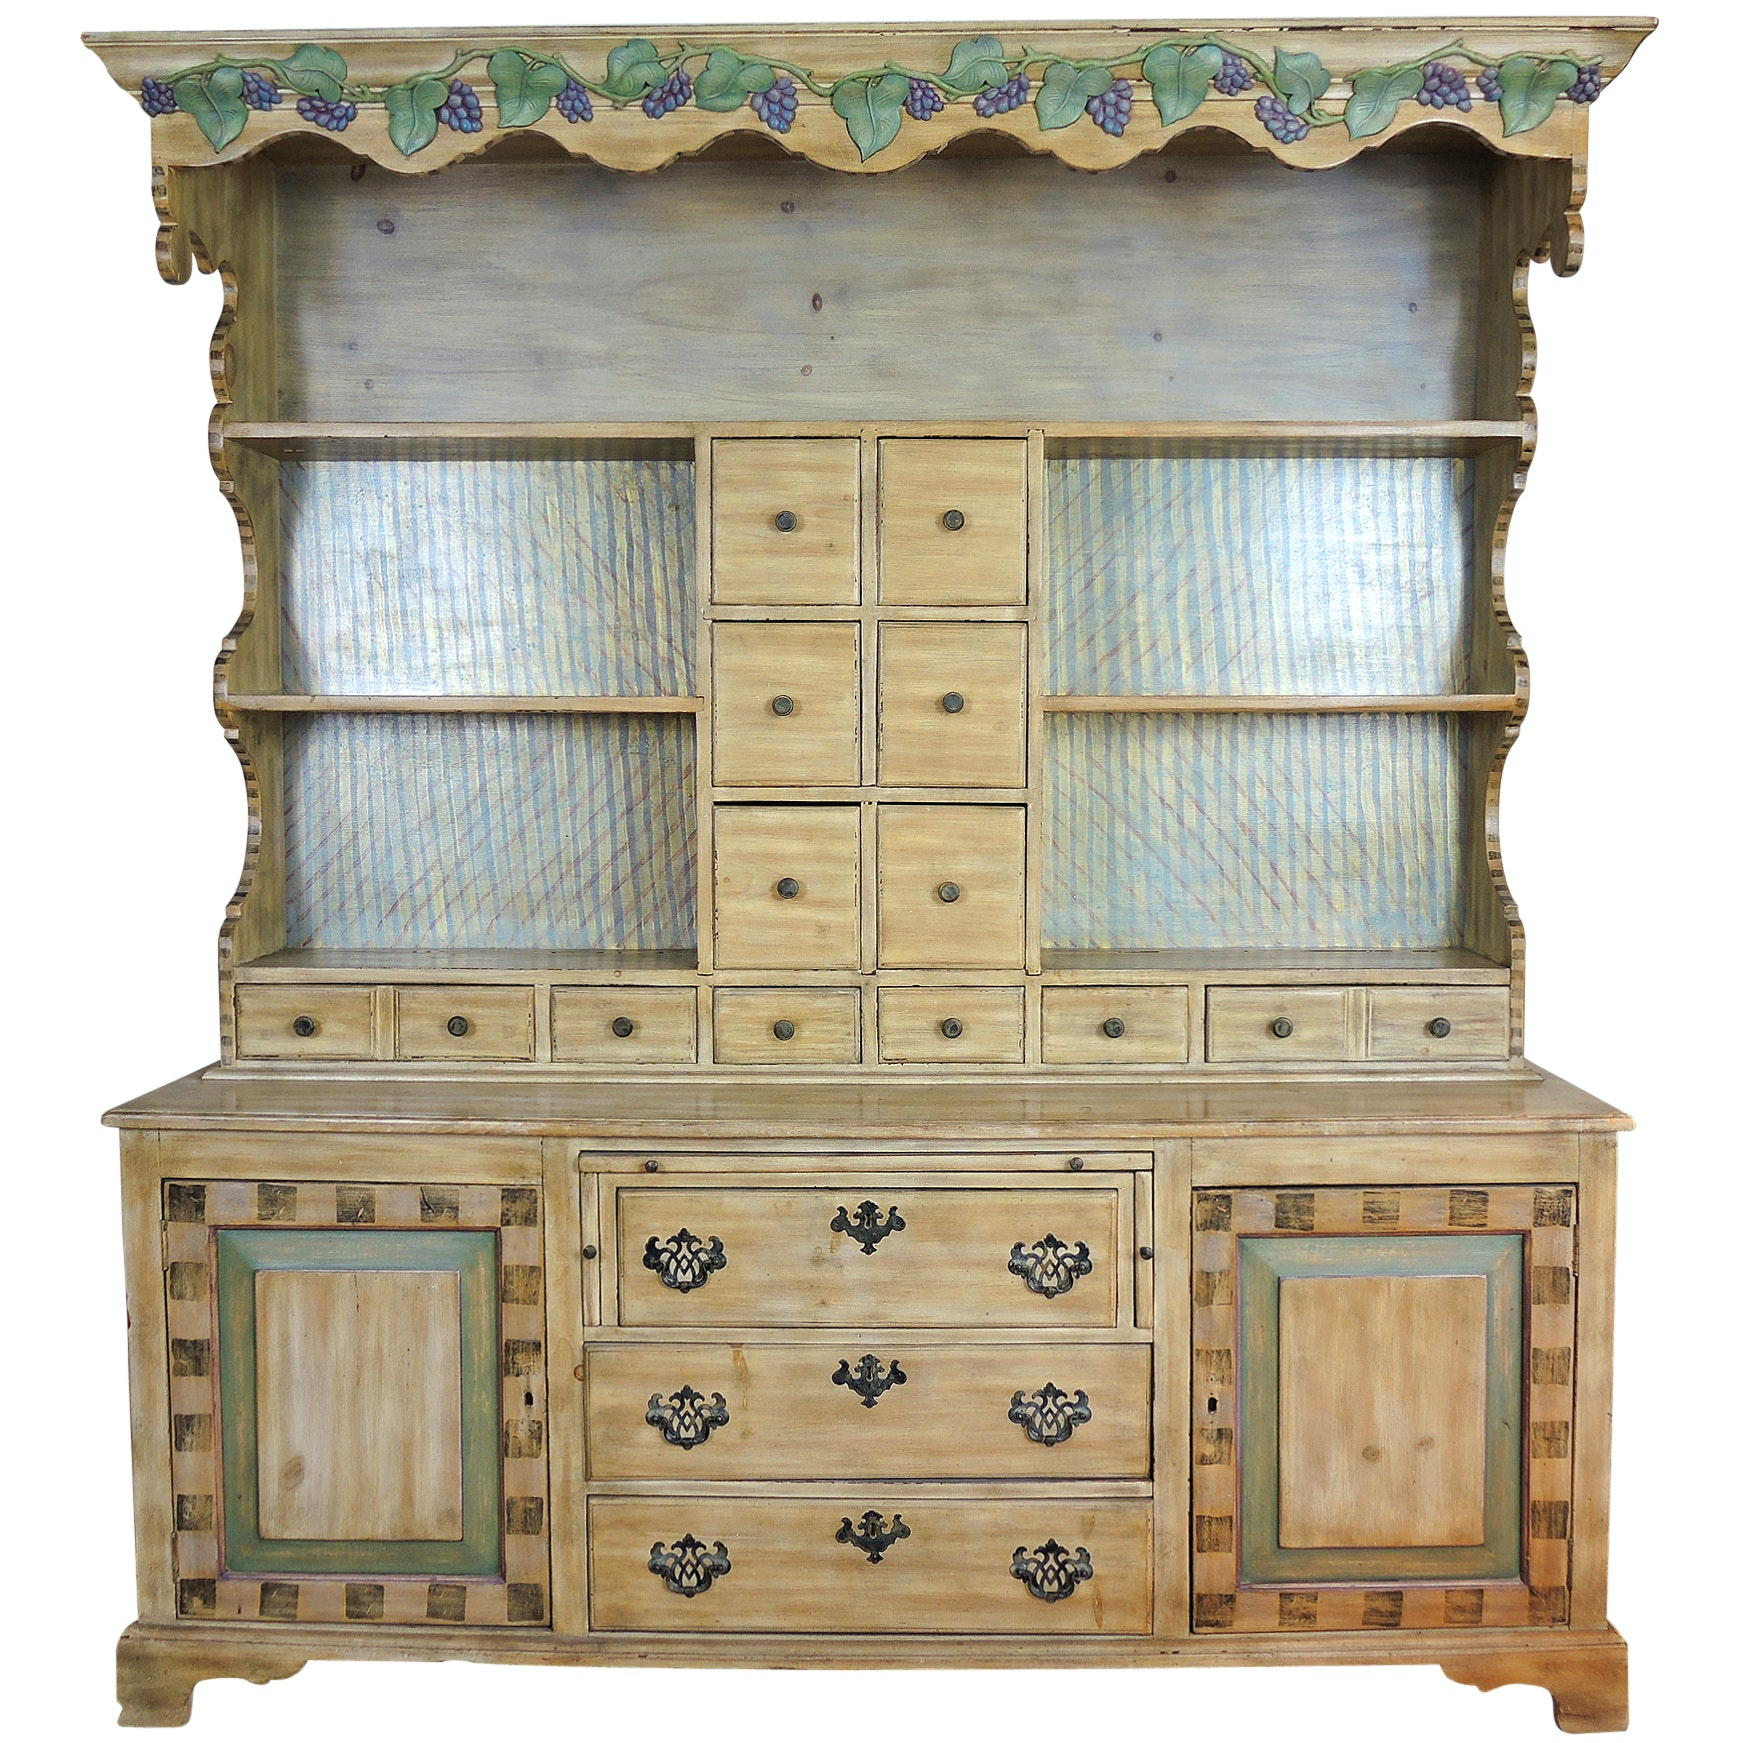 Painted Cabinet with Hutch